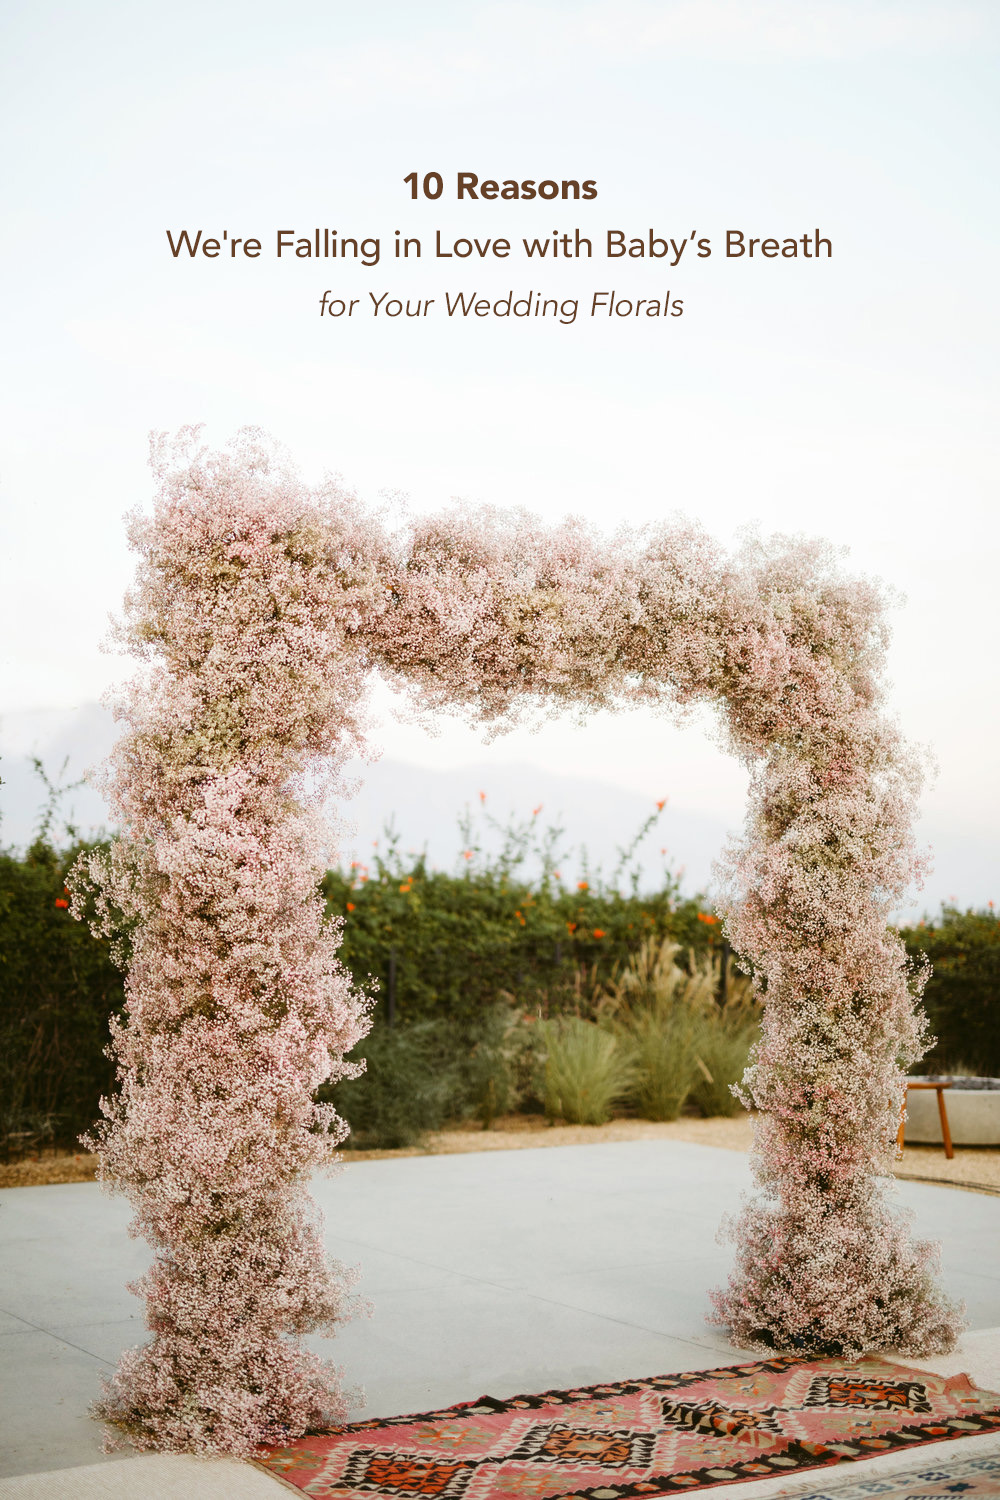 10 Reasons we are Falling in Love with Baby's breath for your Wedding Florals